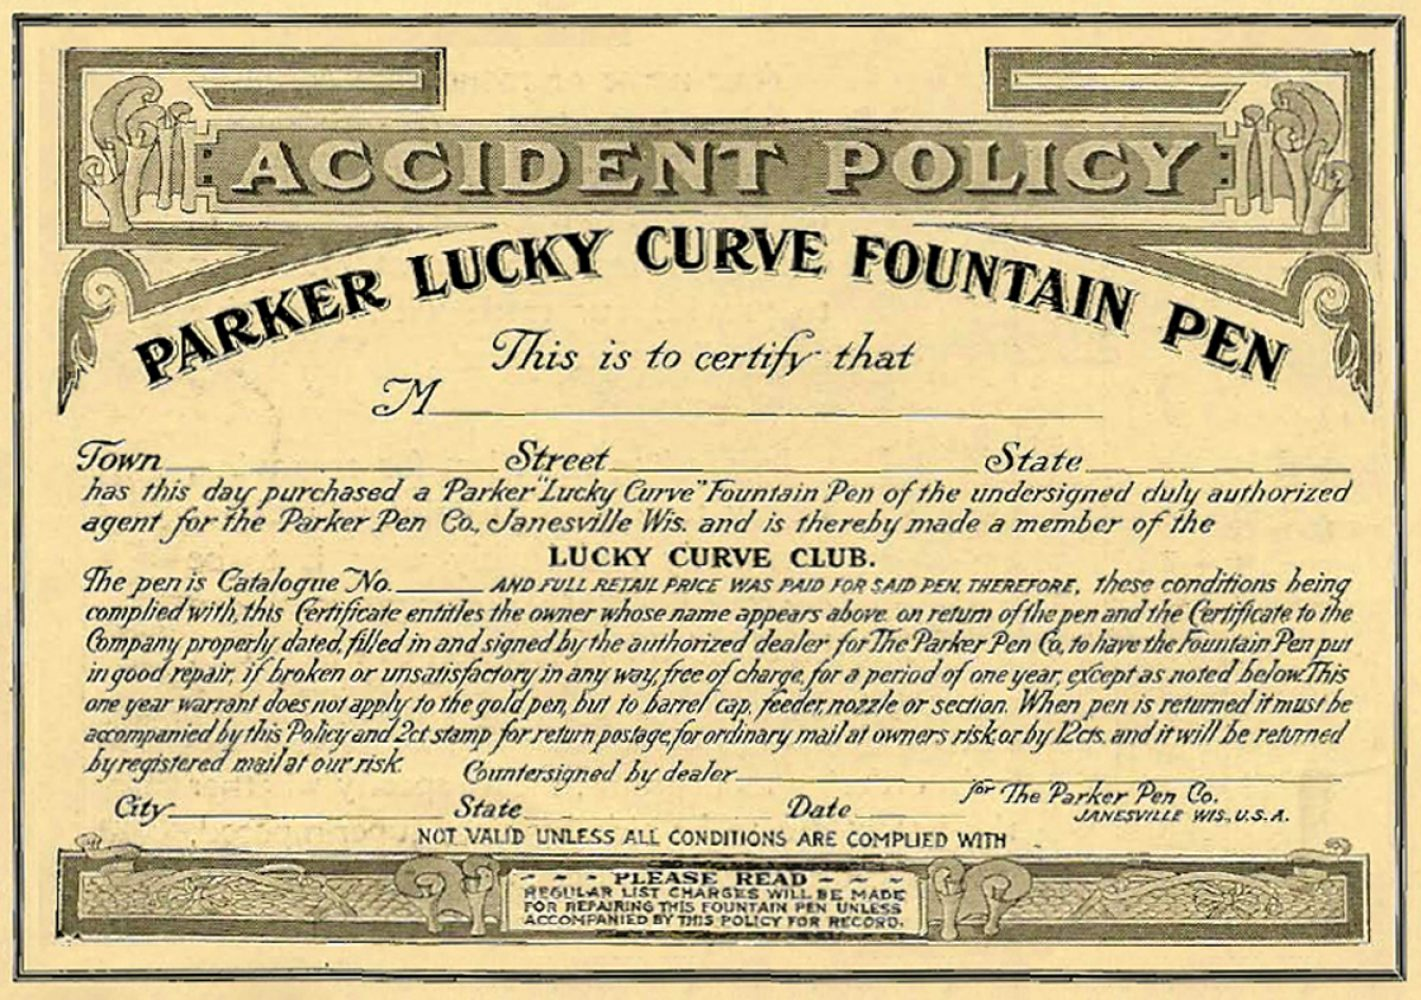 1902 LUCKY CURVE CLUB ACCIDENT POLICY